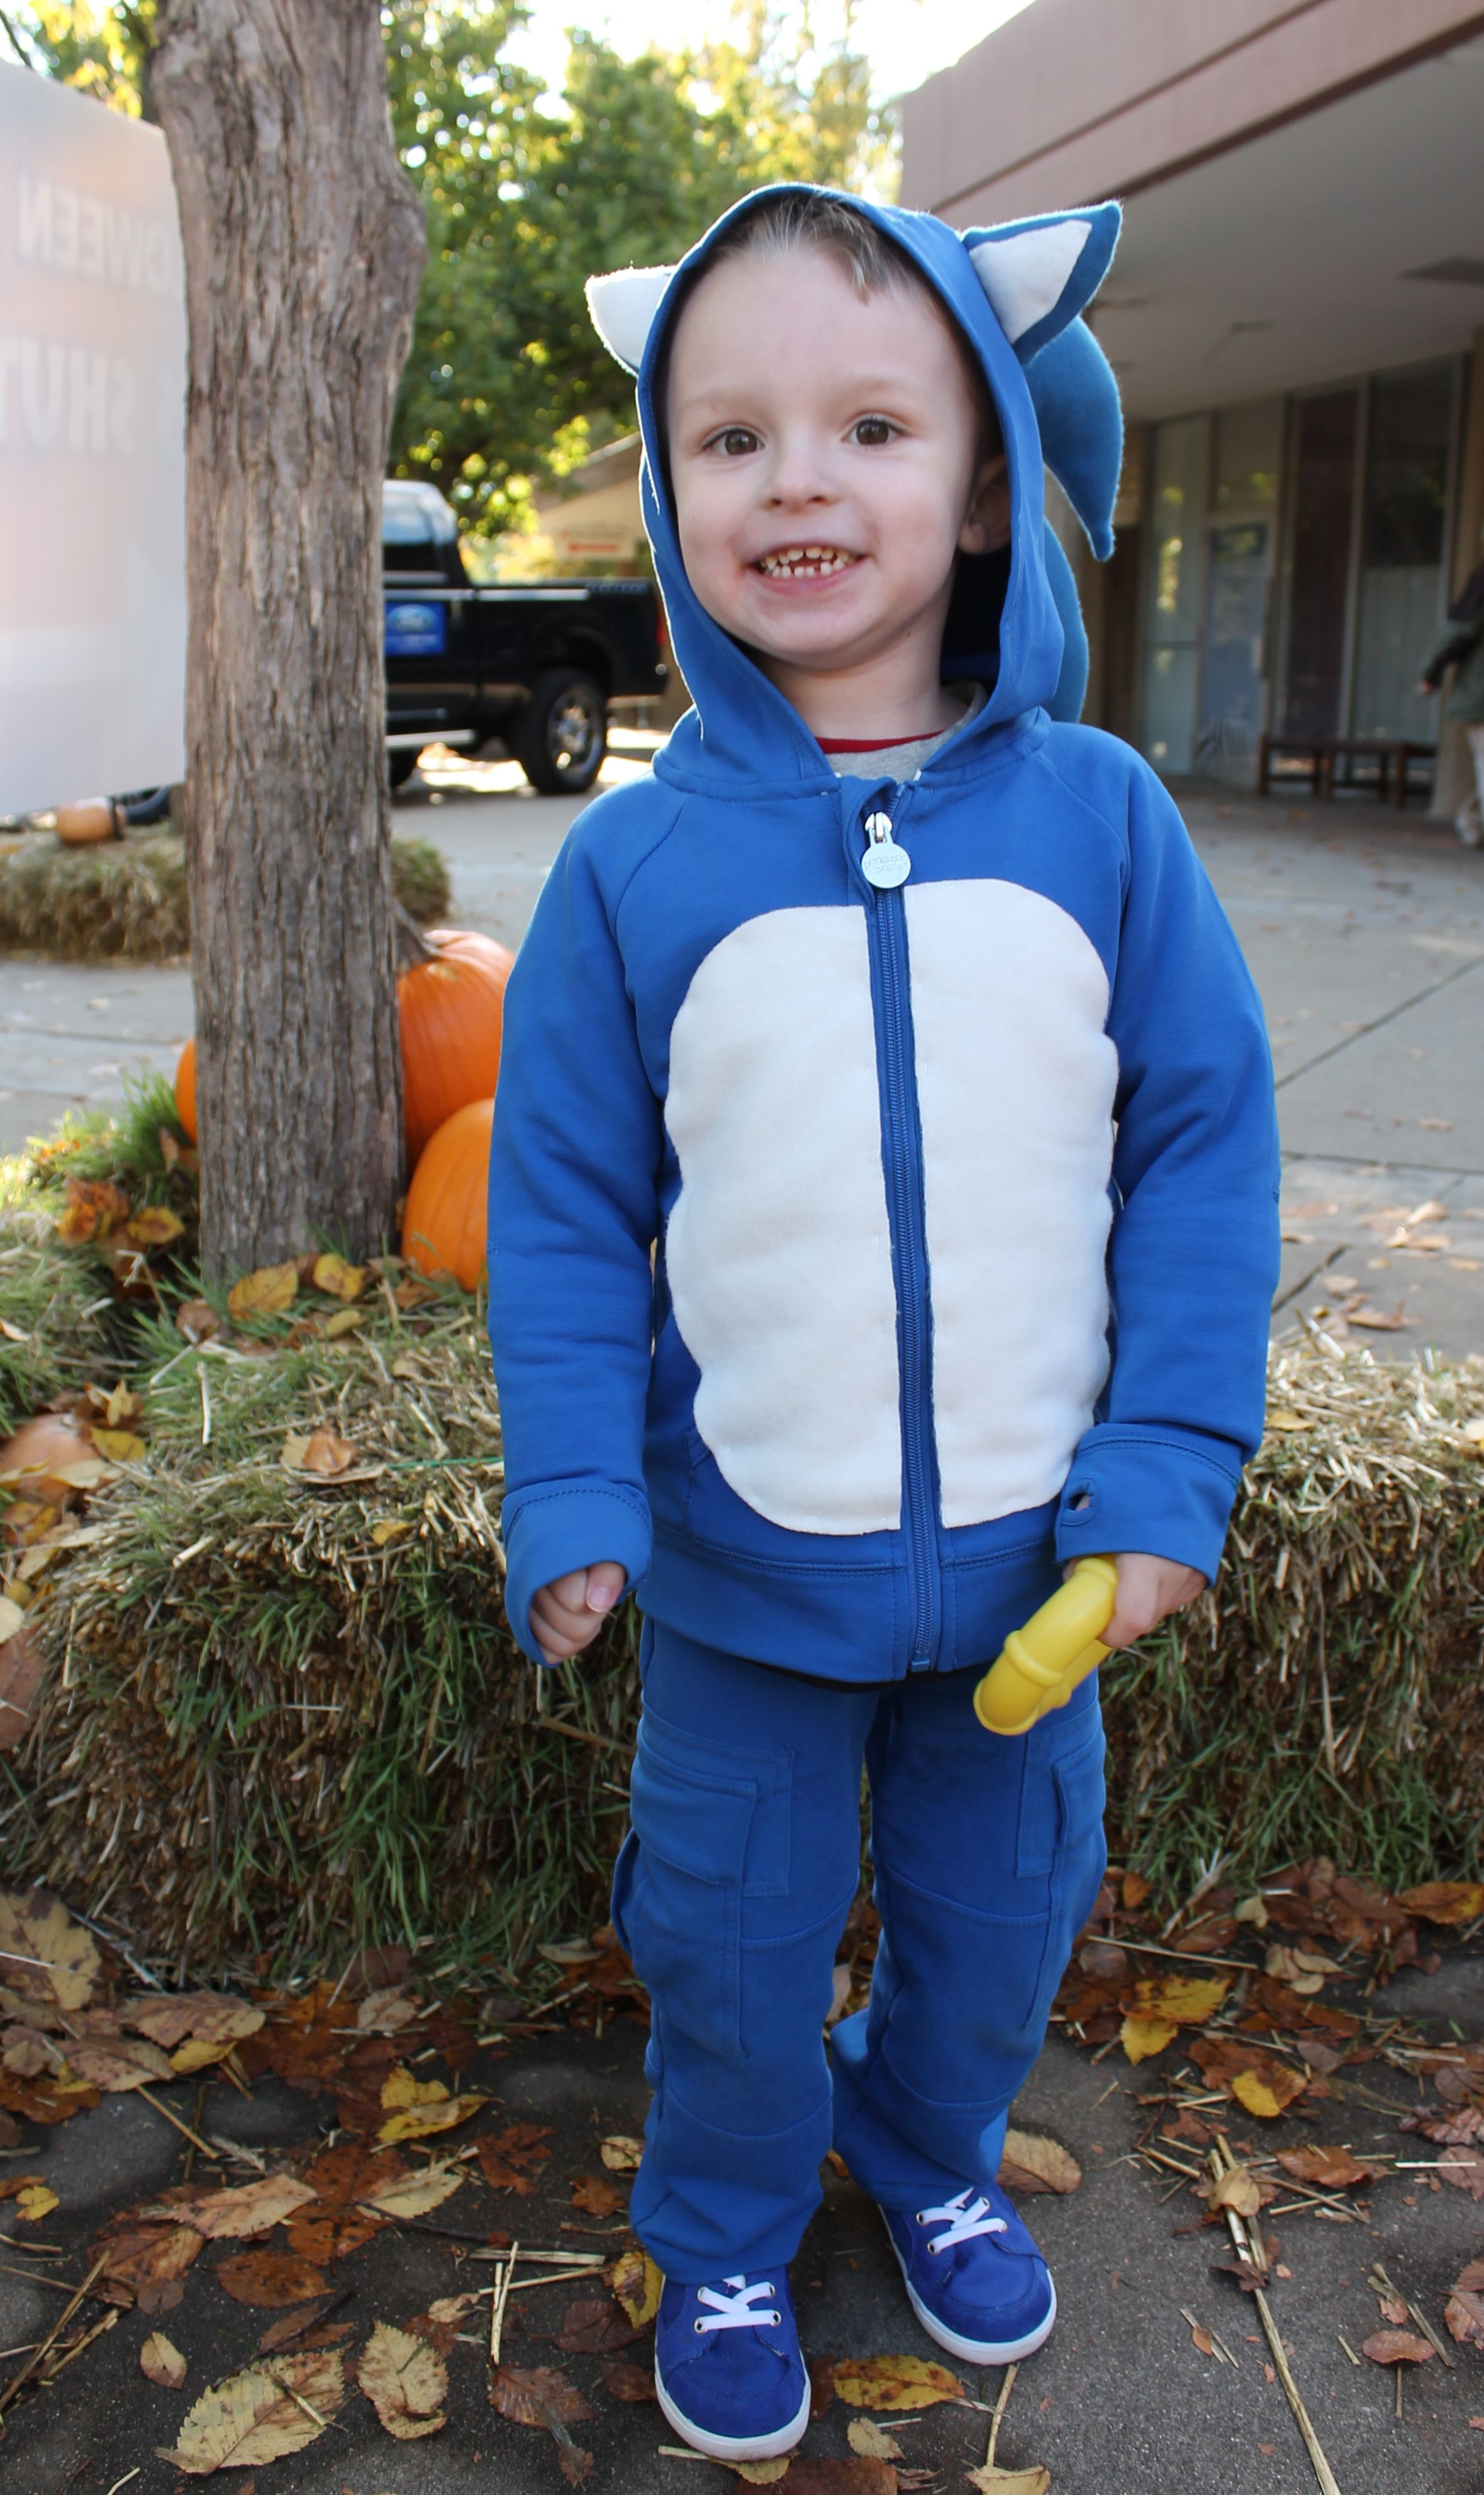 Sonic The Hedgehog Made From Peekaboo Beans Royal Blue On The Go Hoodie And Circa Pants W Sonic The Hedgehog Halloween Costume Sonic Costume Diy Costumes Kids